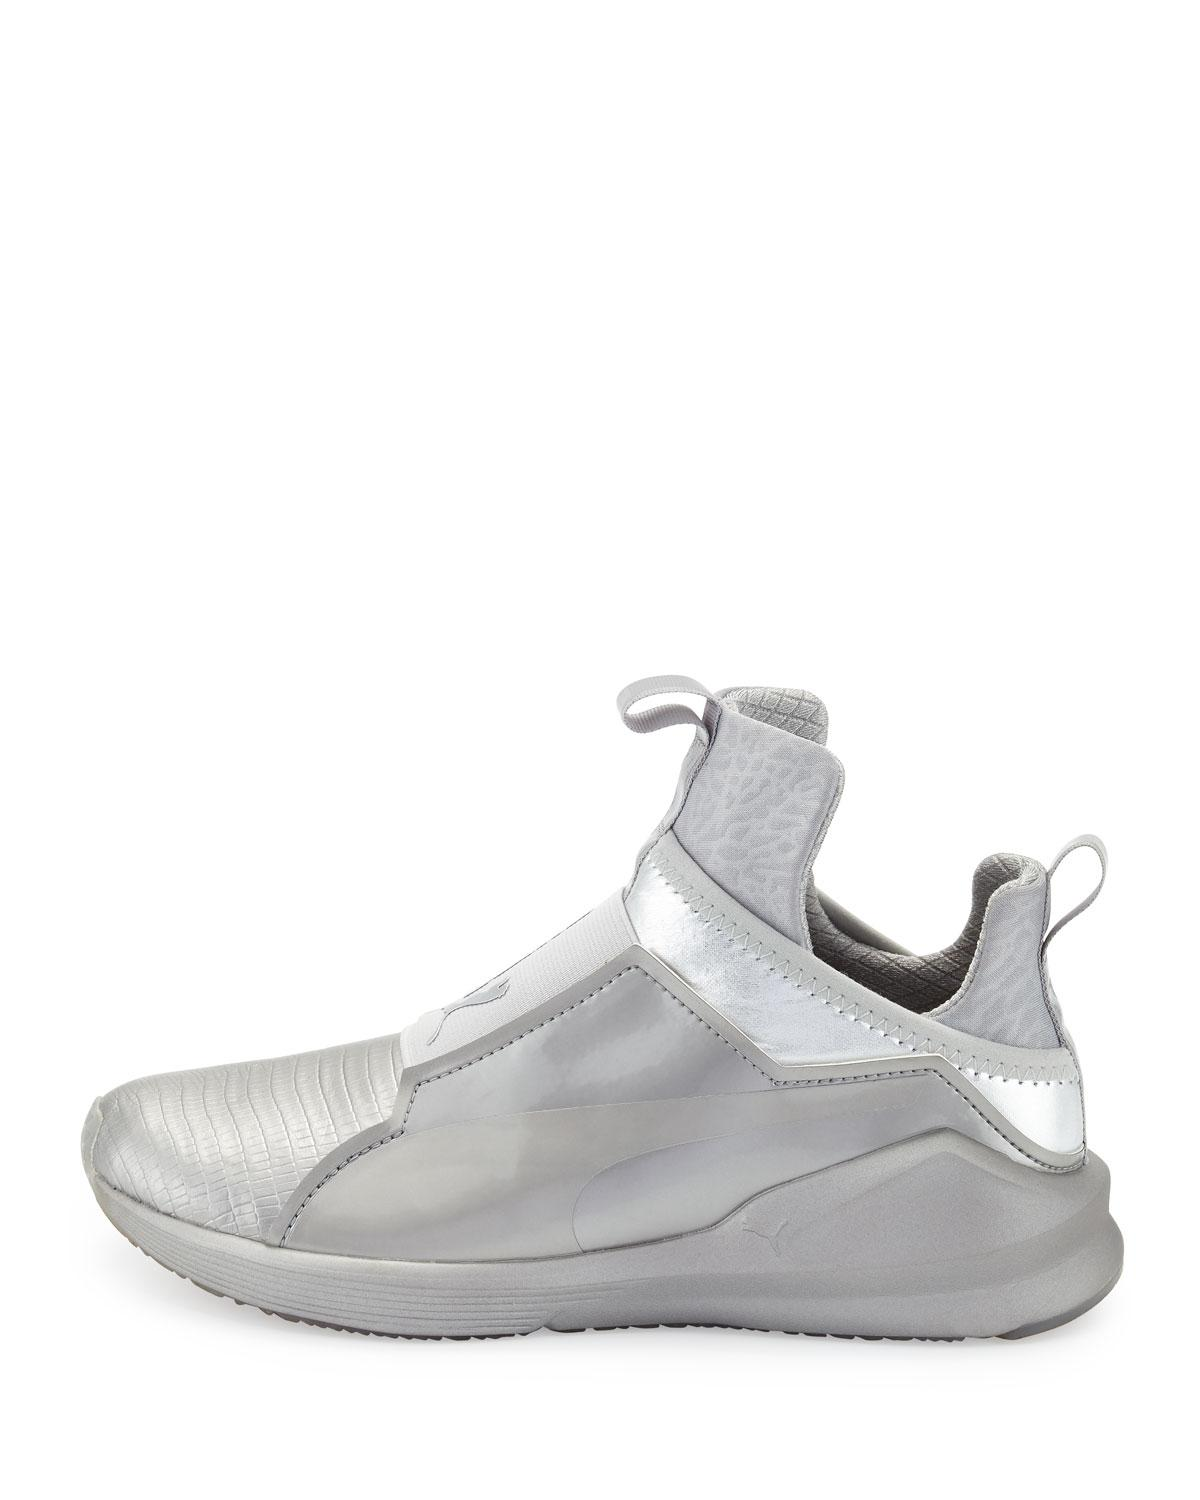 2b8e3be043a4 Lyst - PUMA Fierce Lizard-embossed High-top Sneaker in Metallic